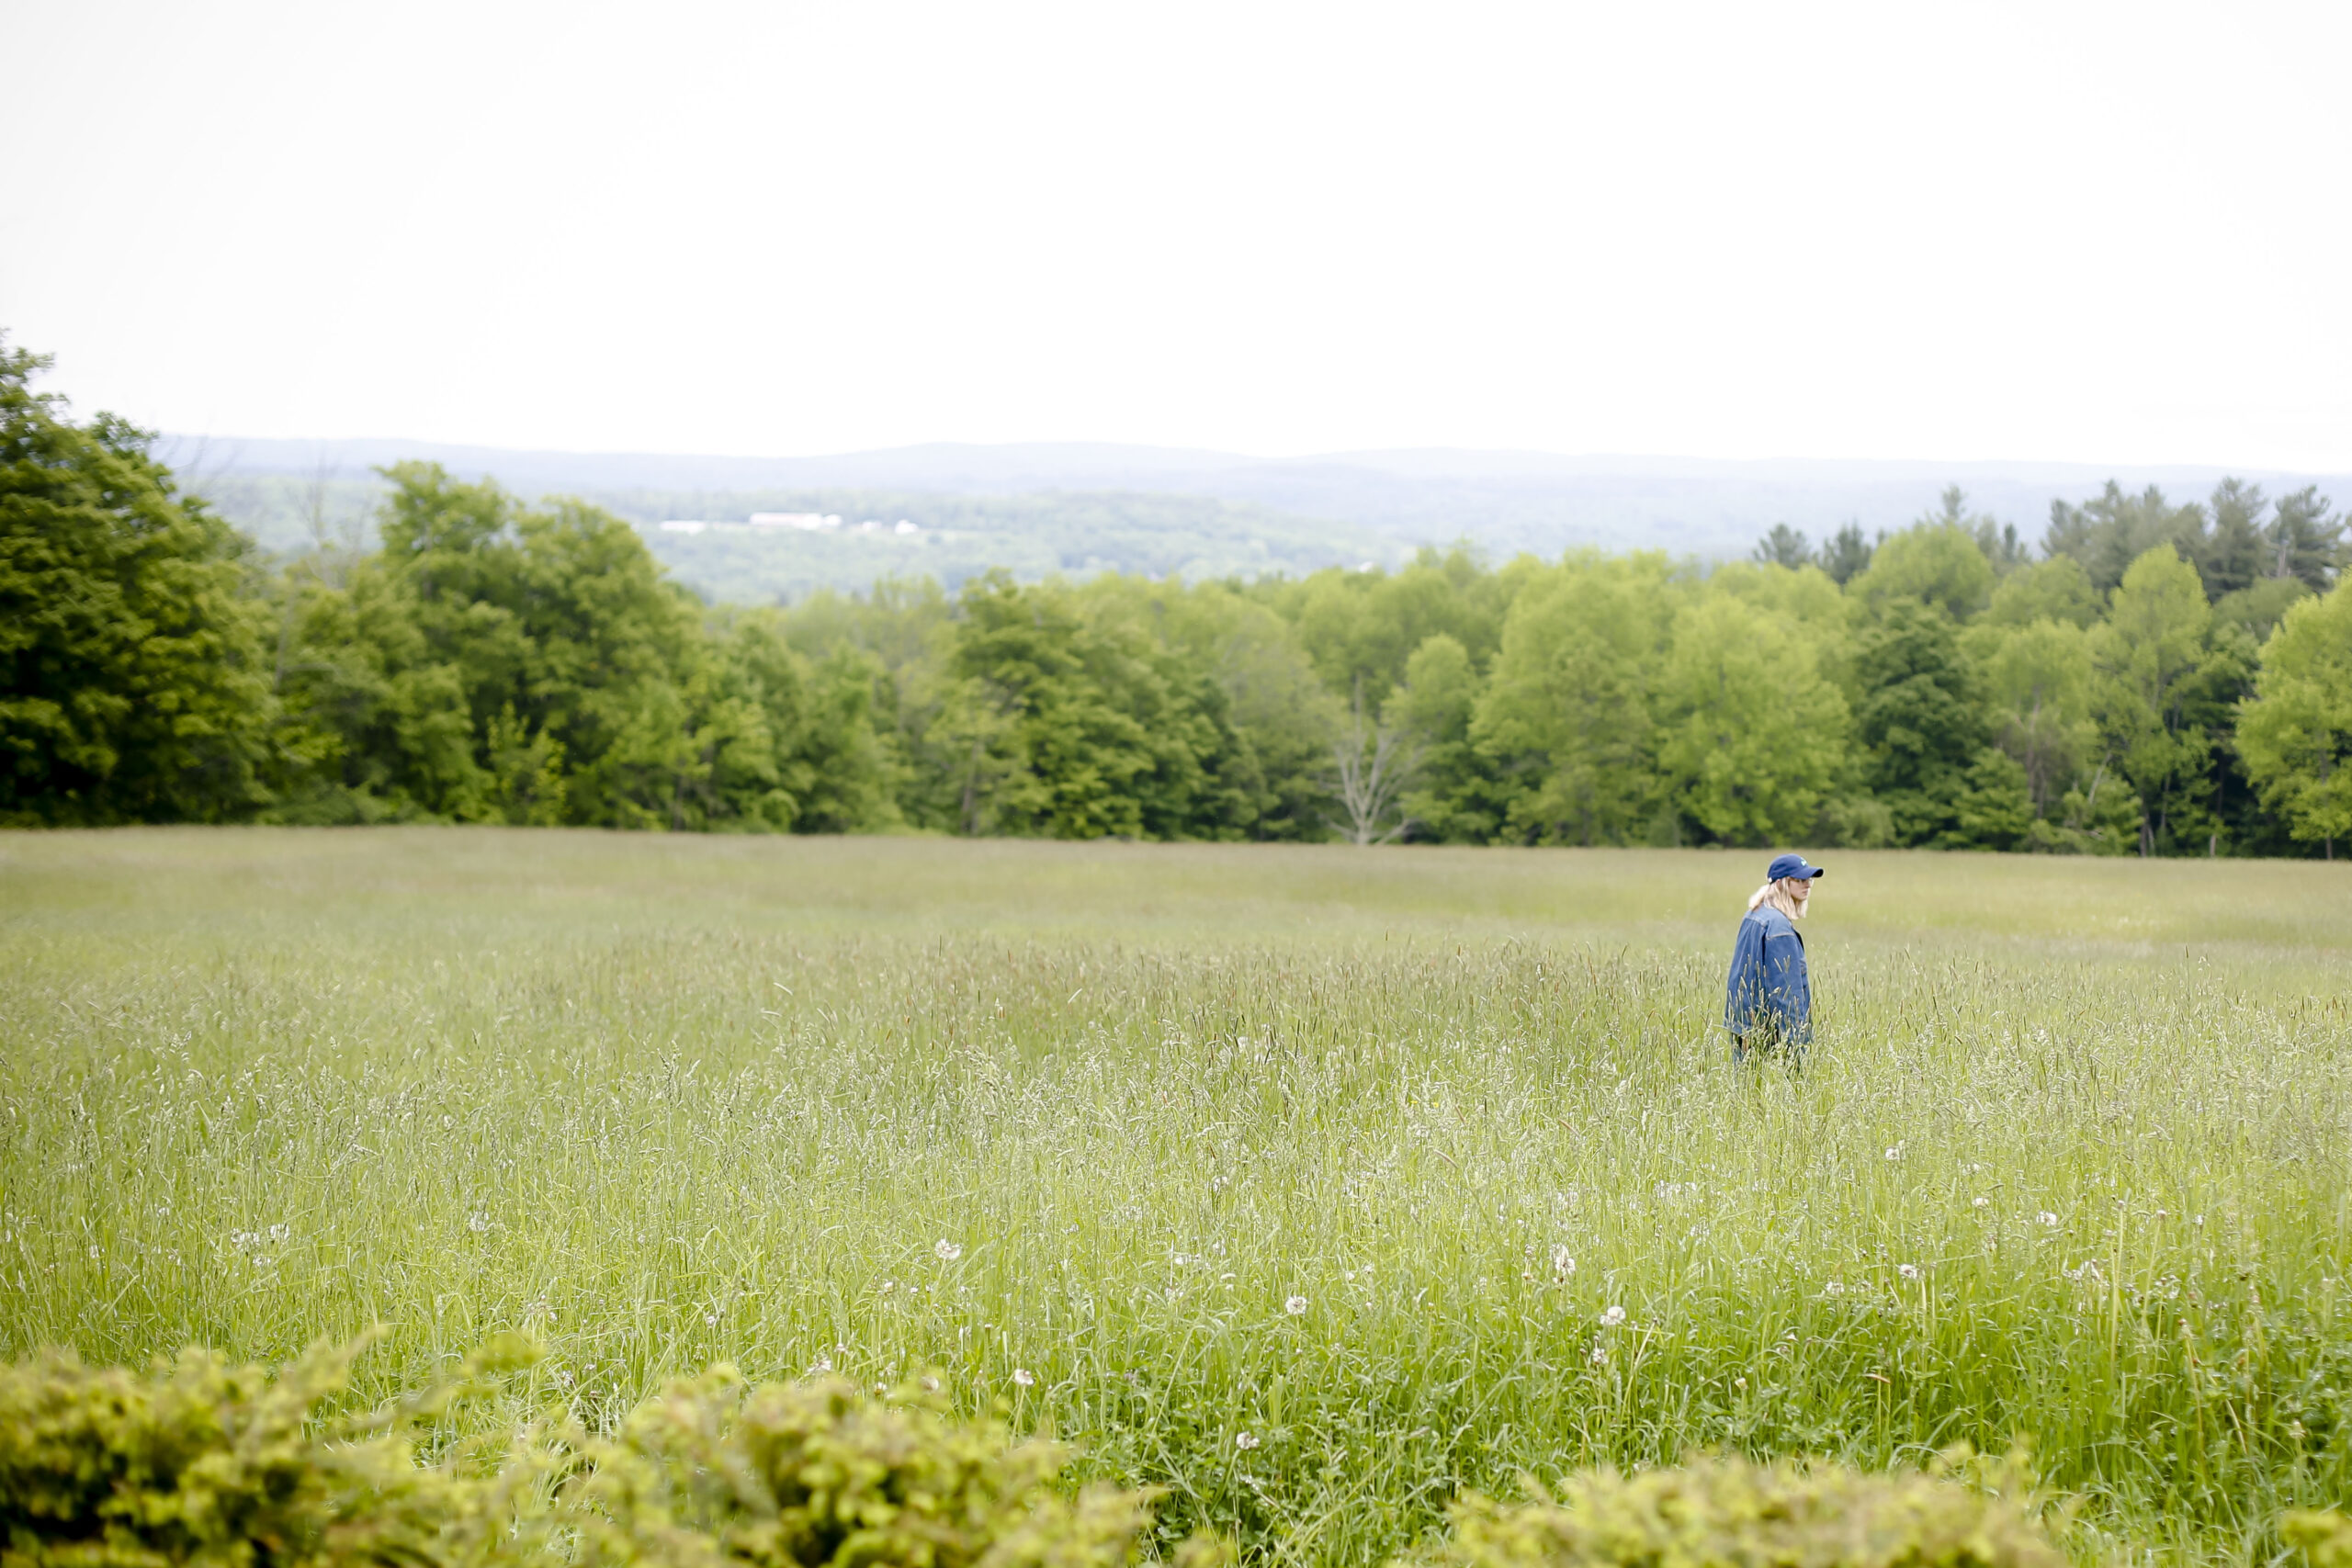 Person walking in tall grass